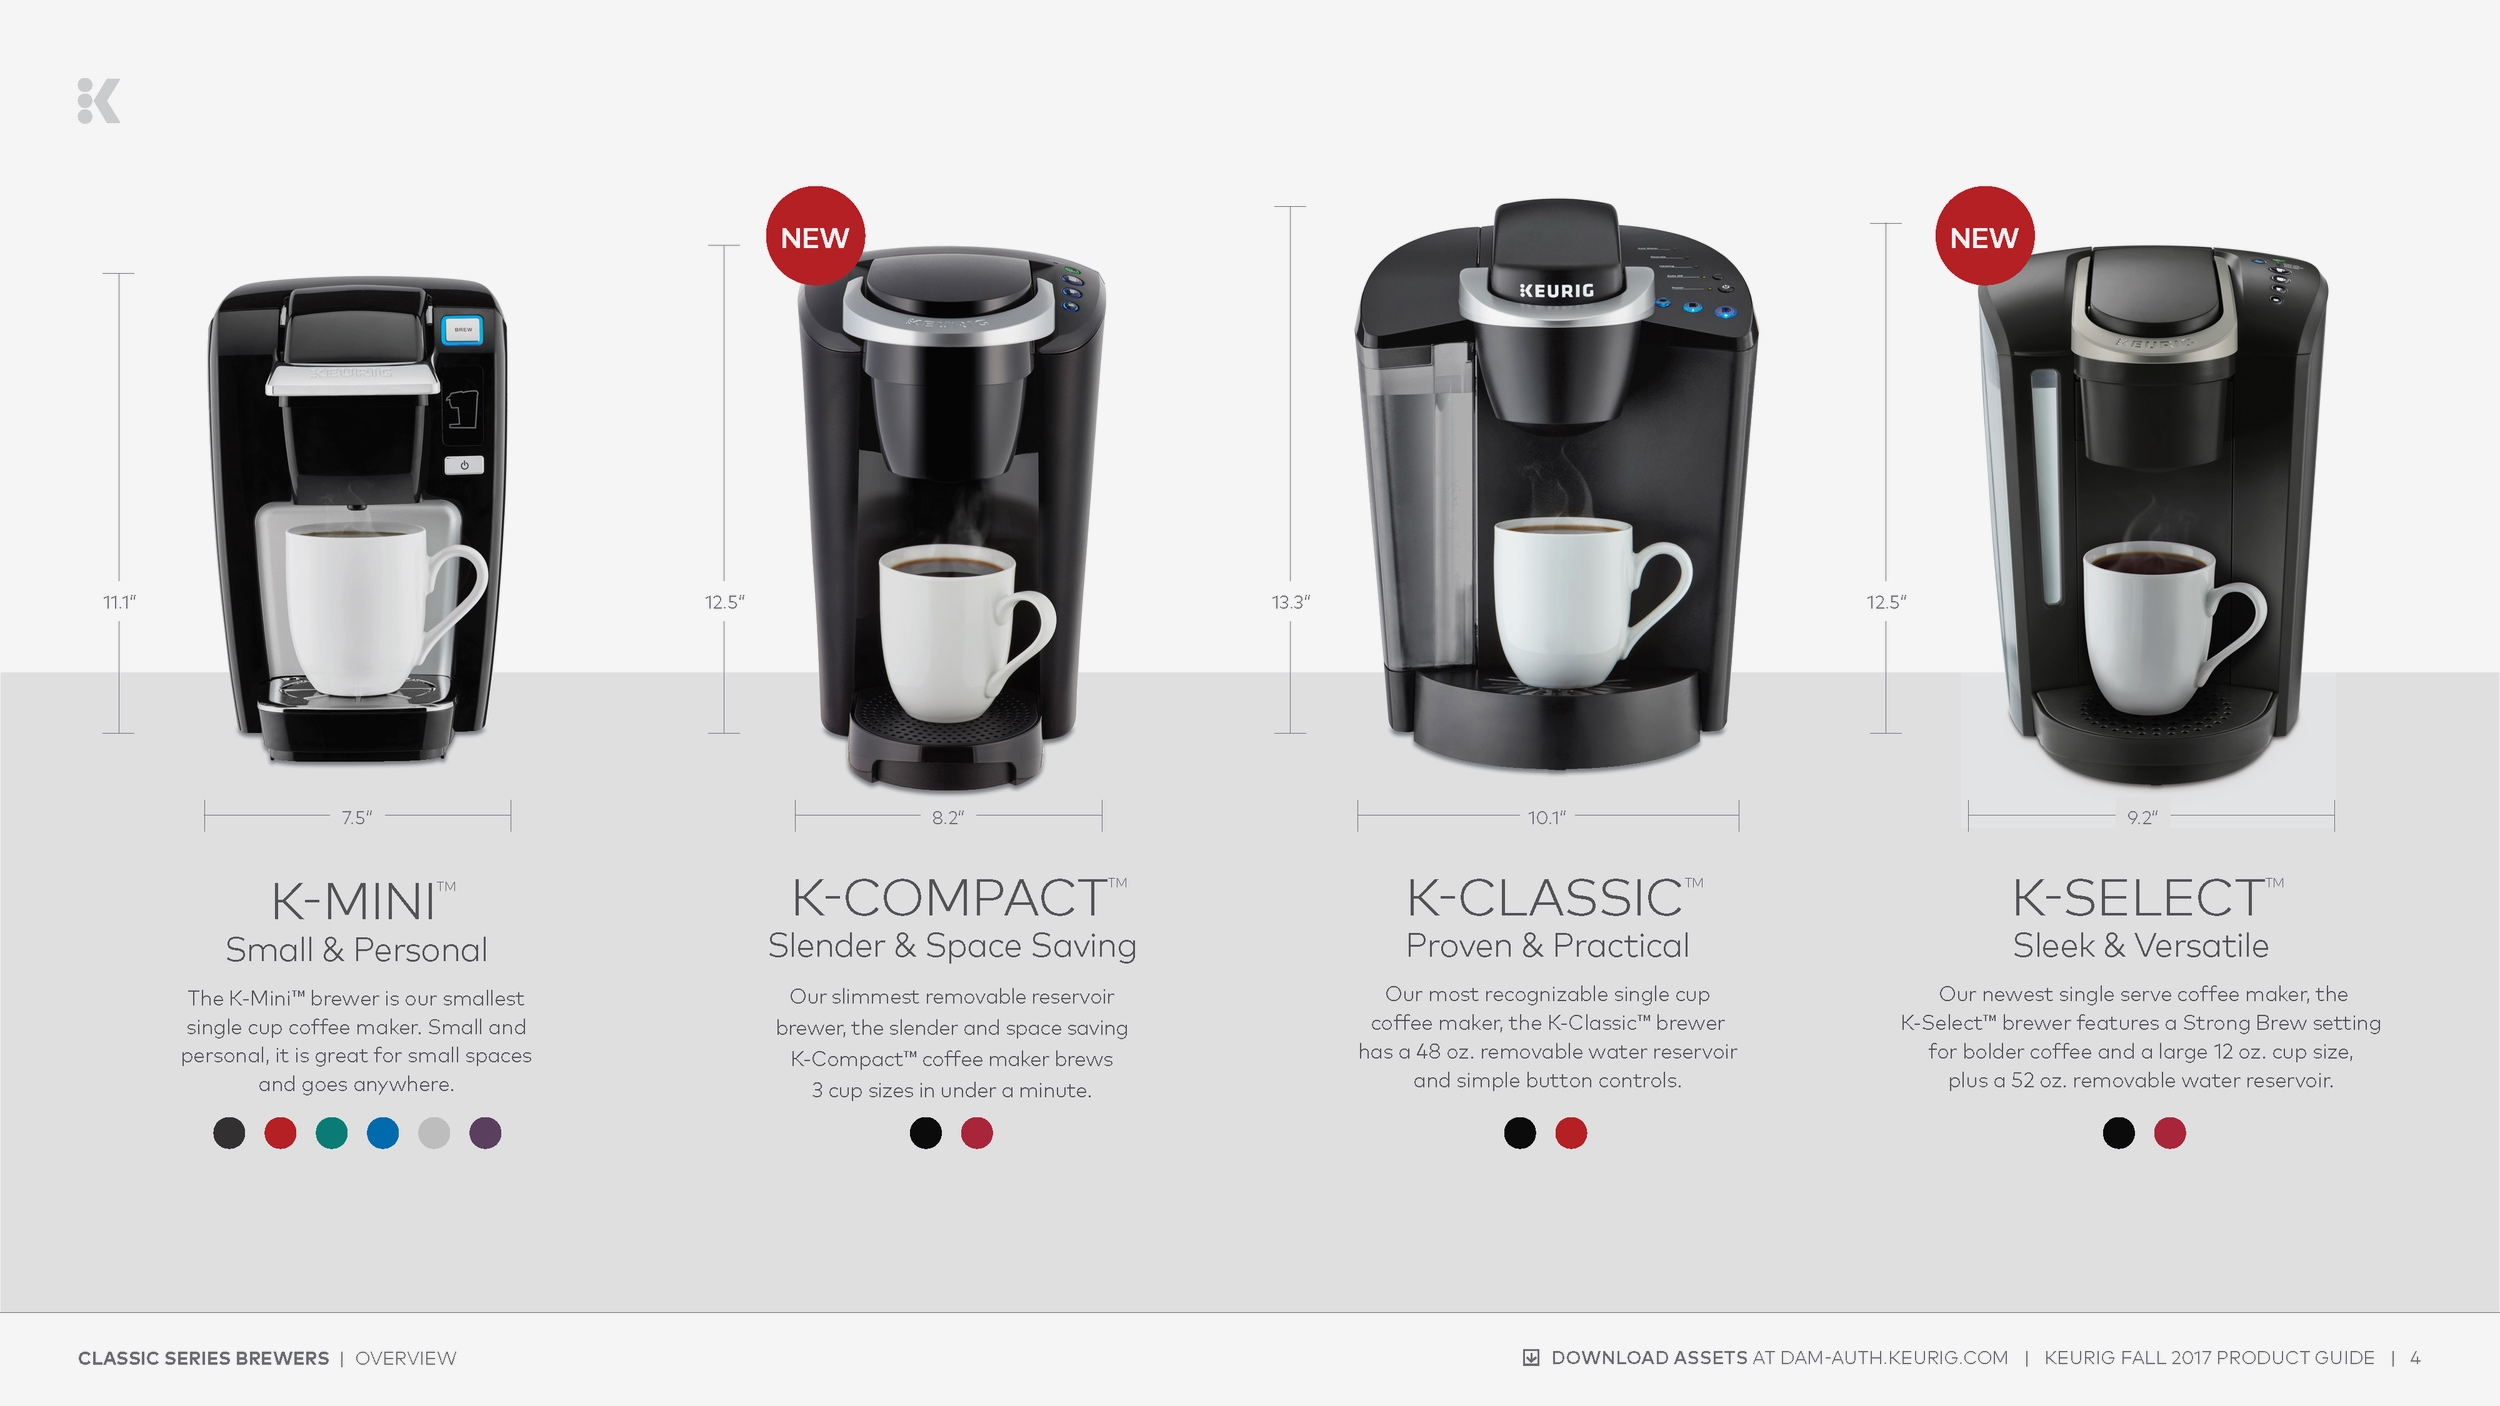 keurig_product_guide_F17_R8_Page_04.png